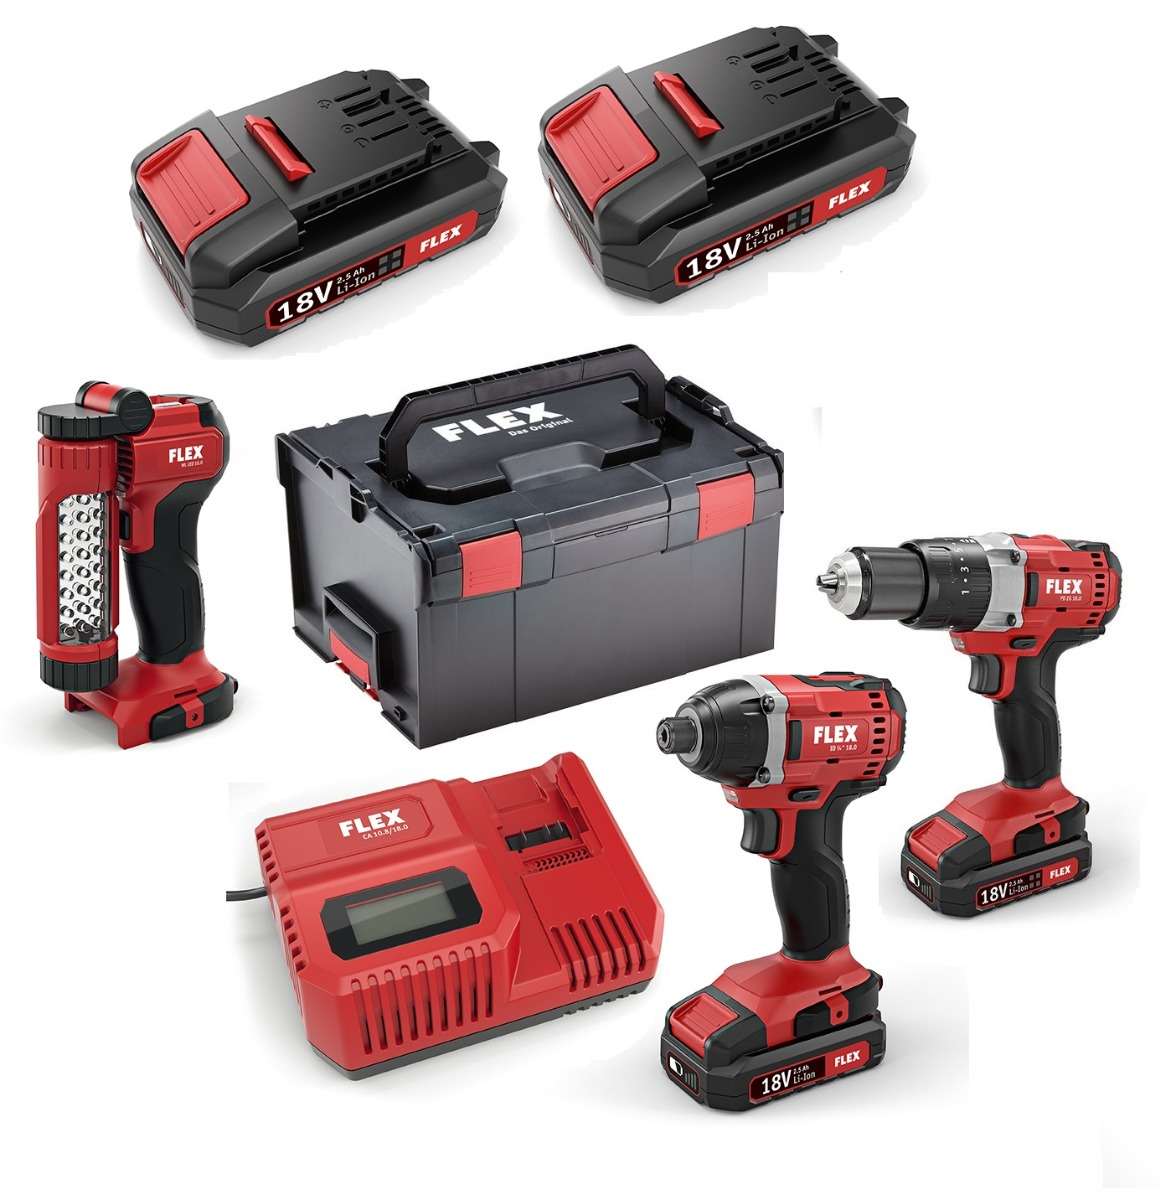 18v Drill and Impact Driver Twin Pack With Free Work Light And 4 x 2.5Ah Batteries